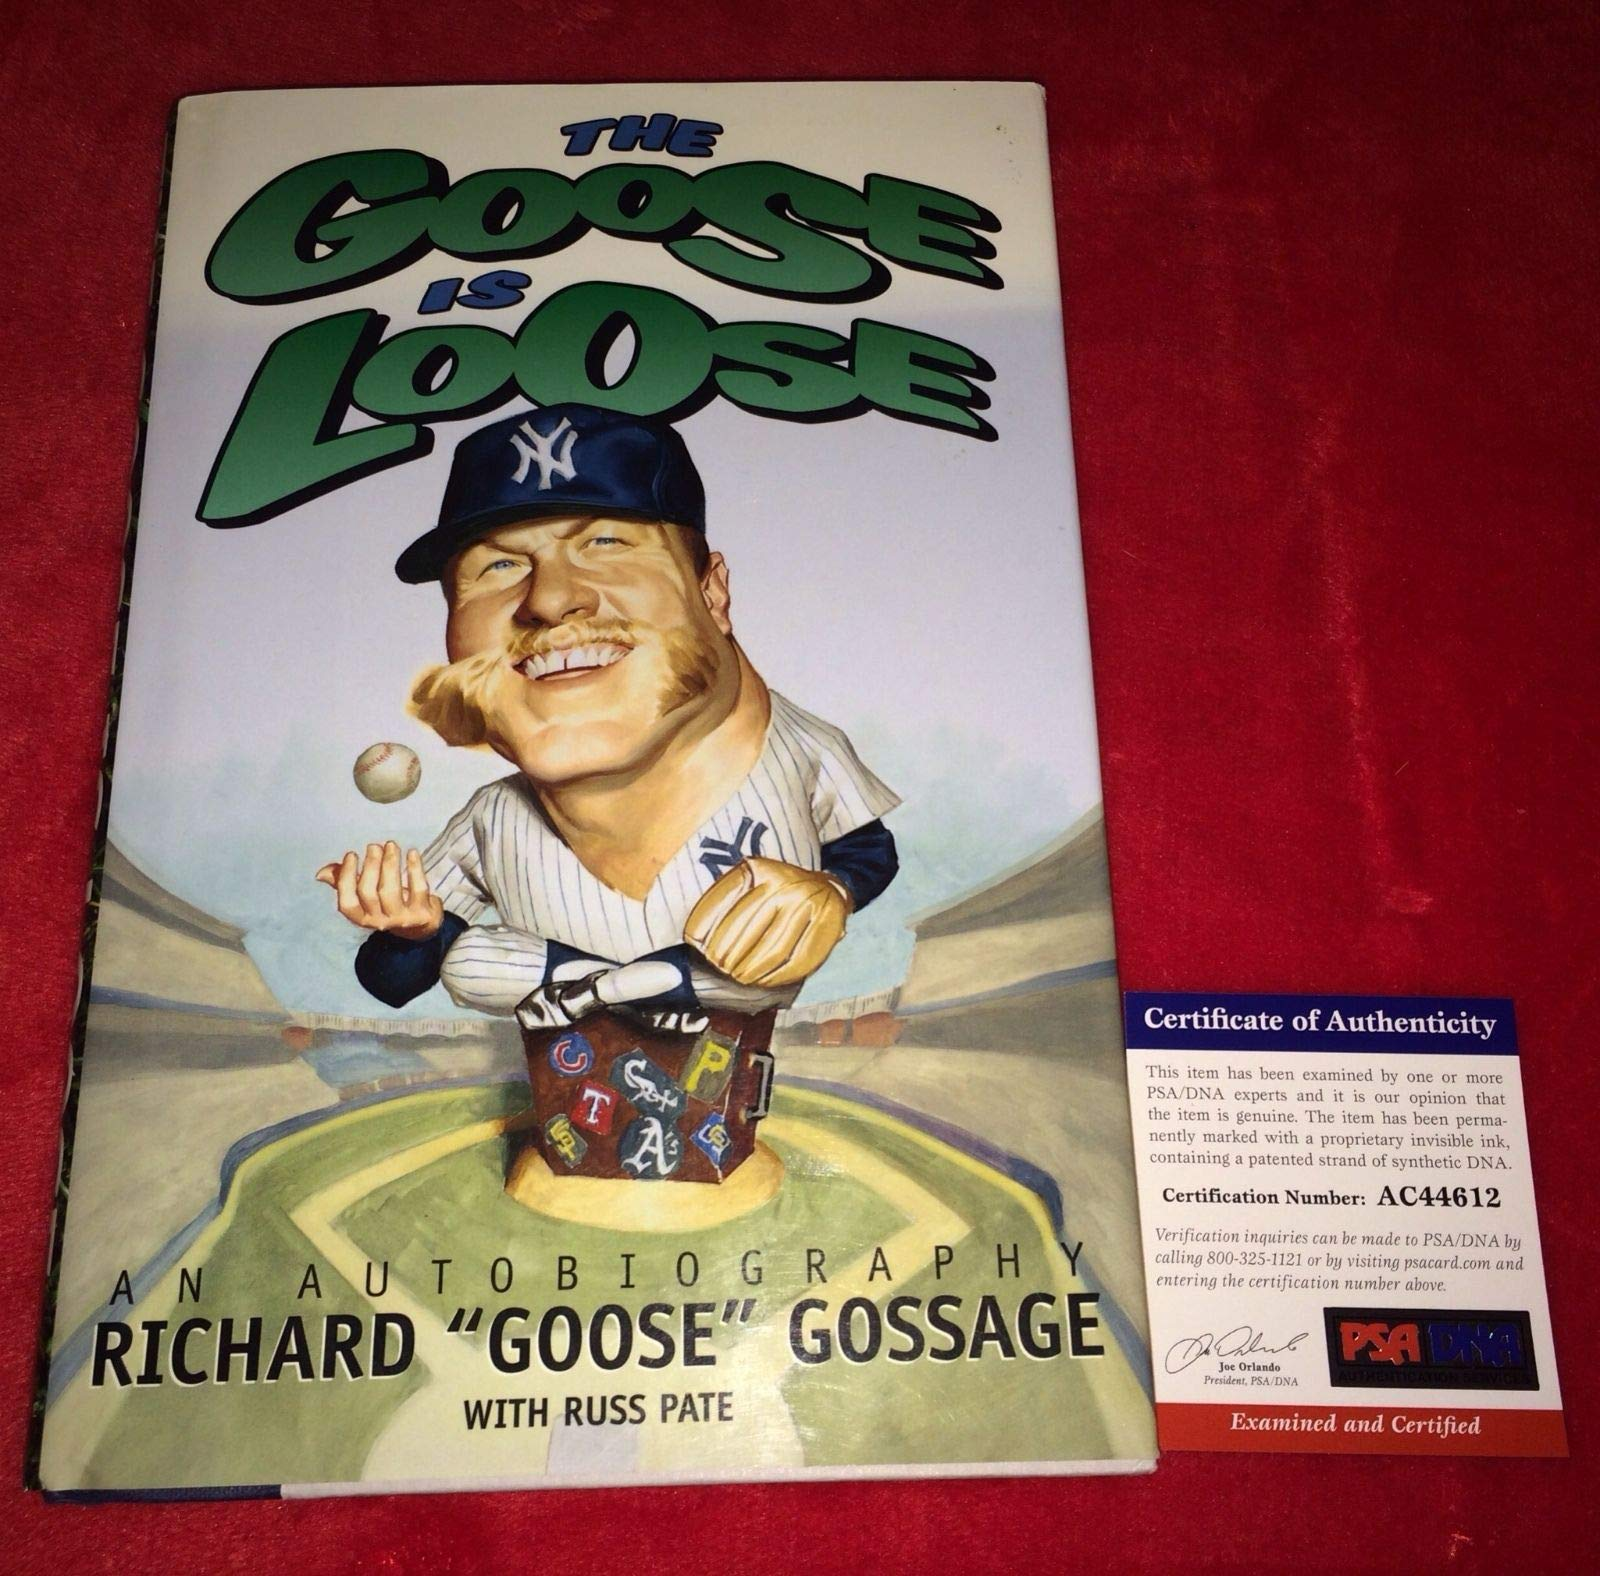 Rich Goose Gossage Hofer Autographed Signed The Goose Is Loose Book PSA/DNA Authentic